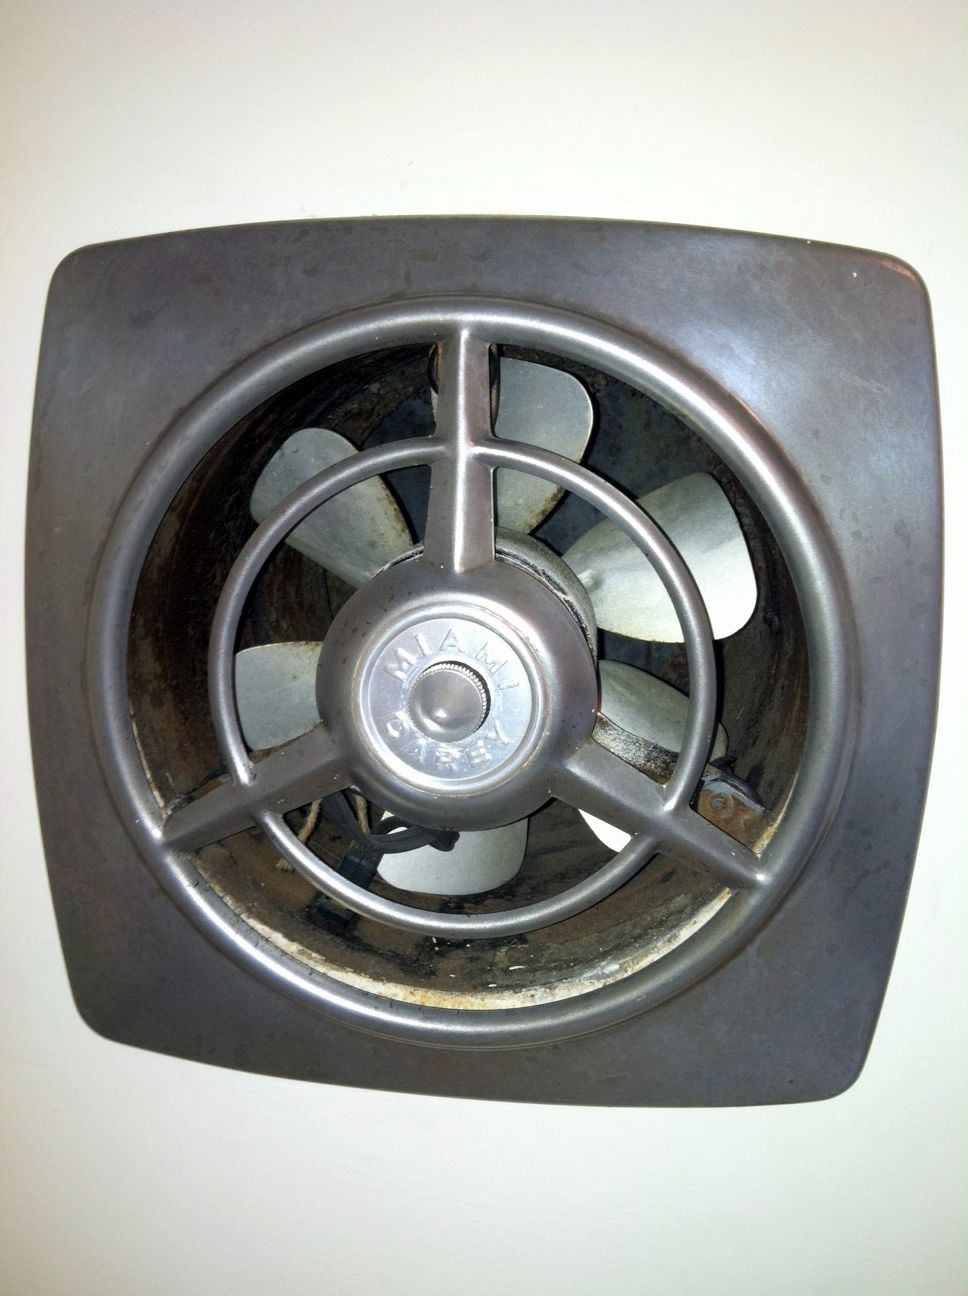 Restored Vintage Miami Carey Kitchen Vent Fan Unearthered From Layers Of Flat White Wall Paint Exhaust Fan Bathroom Fan Bathroom Fan Light